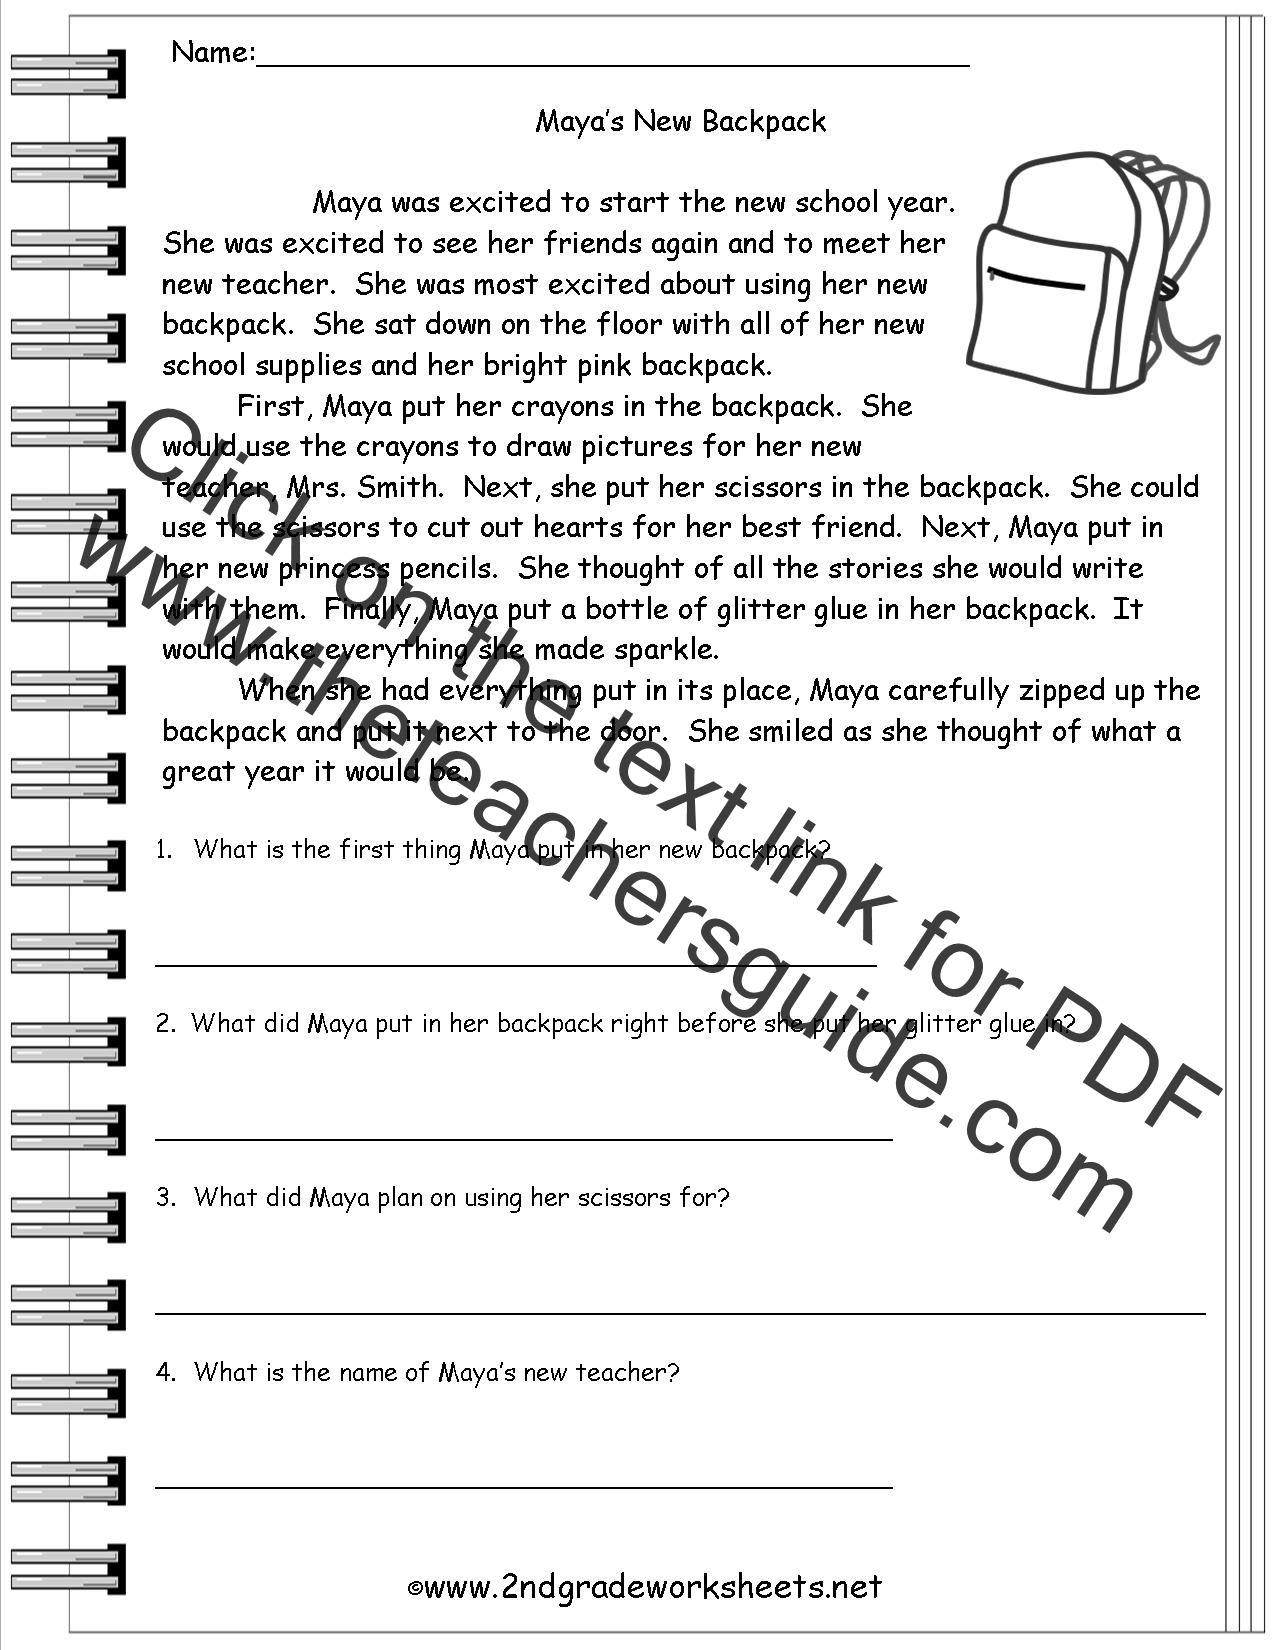 Worksheet 2nd Grade Short Stories reading worksheeets literature worksheets